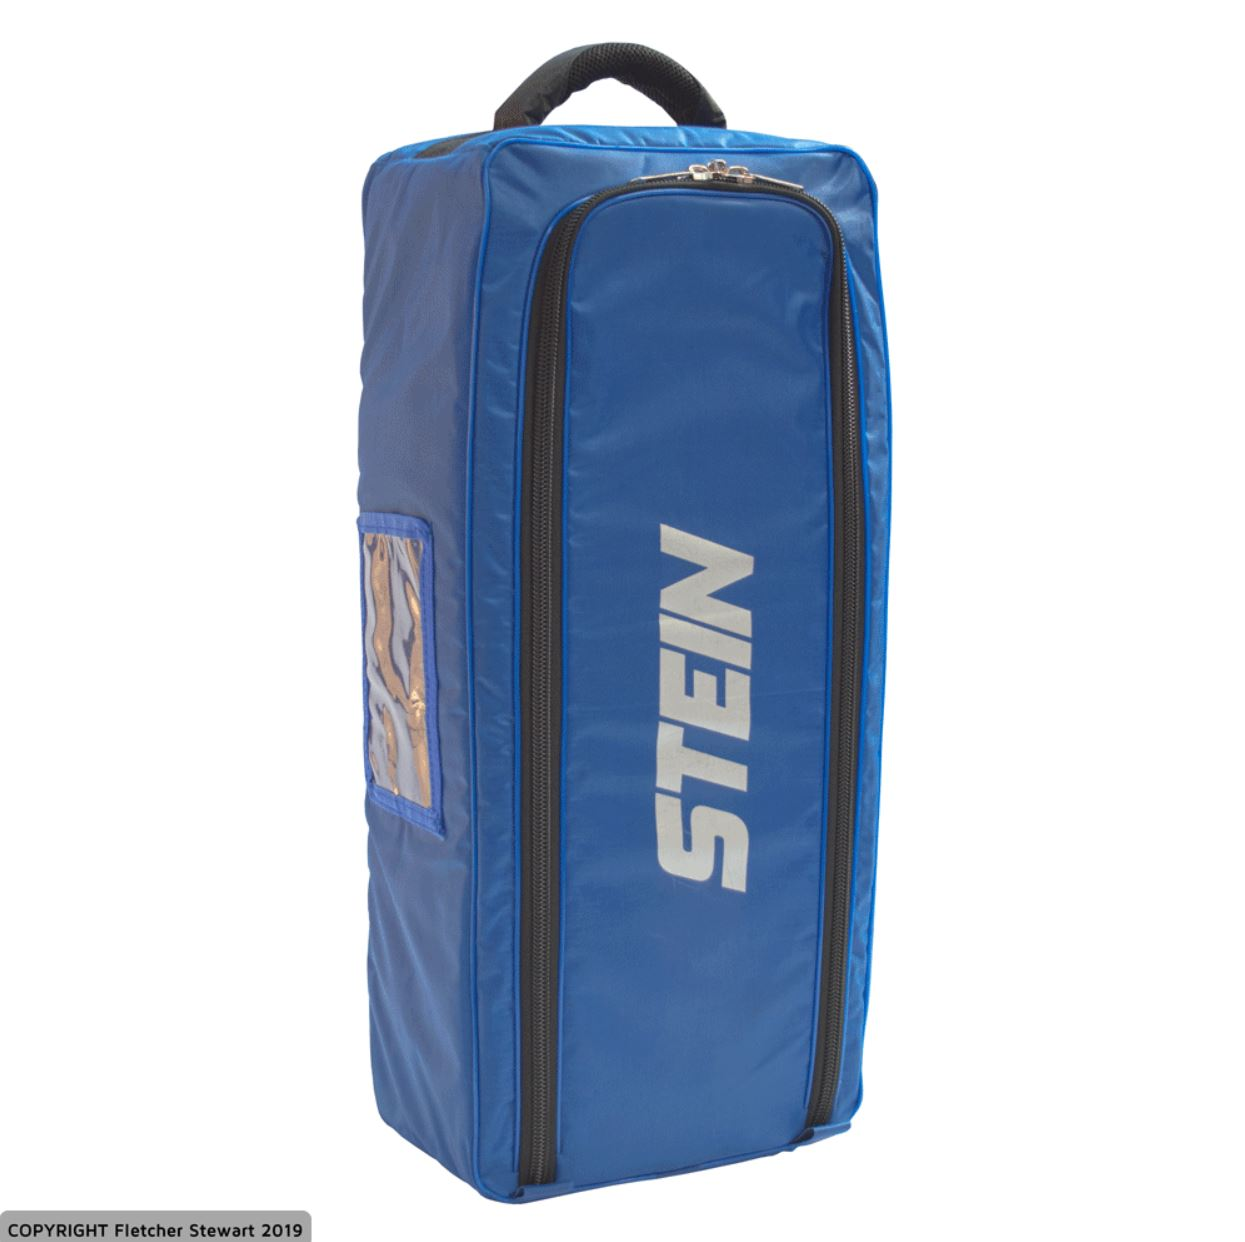 Stein Spur Storage Bag